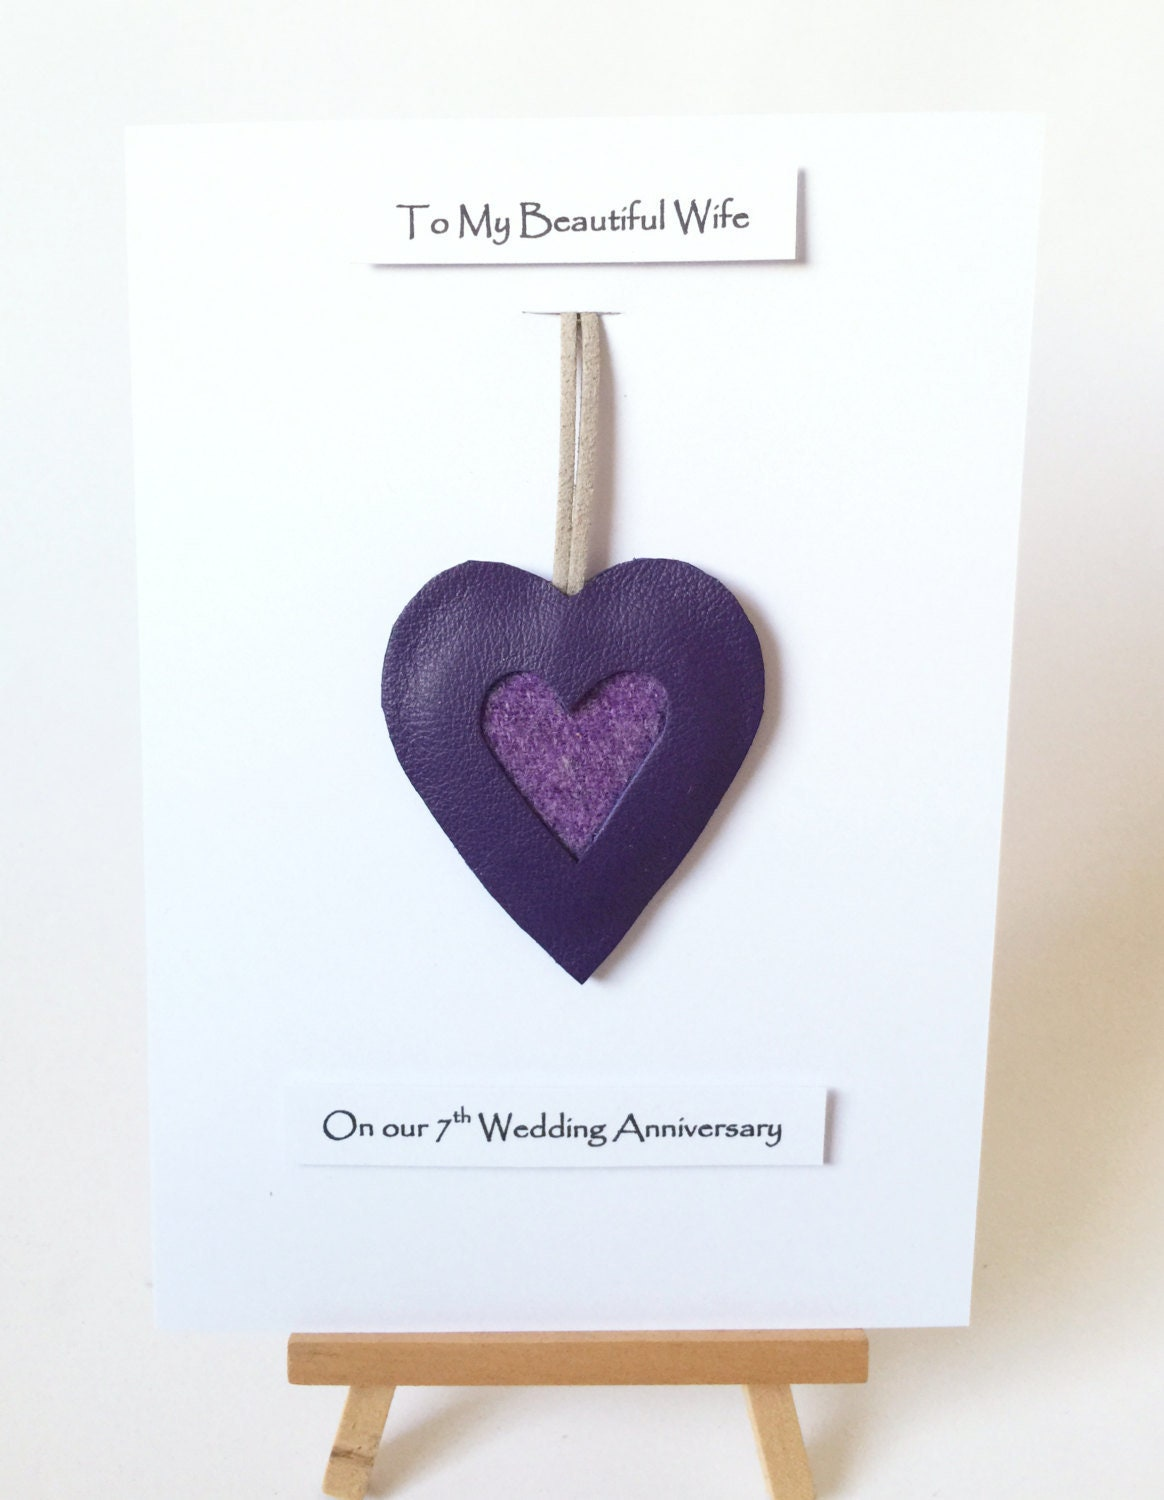 7th Wedding Anniversary Cards Wool Anniversary Gifts